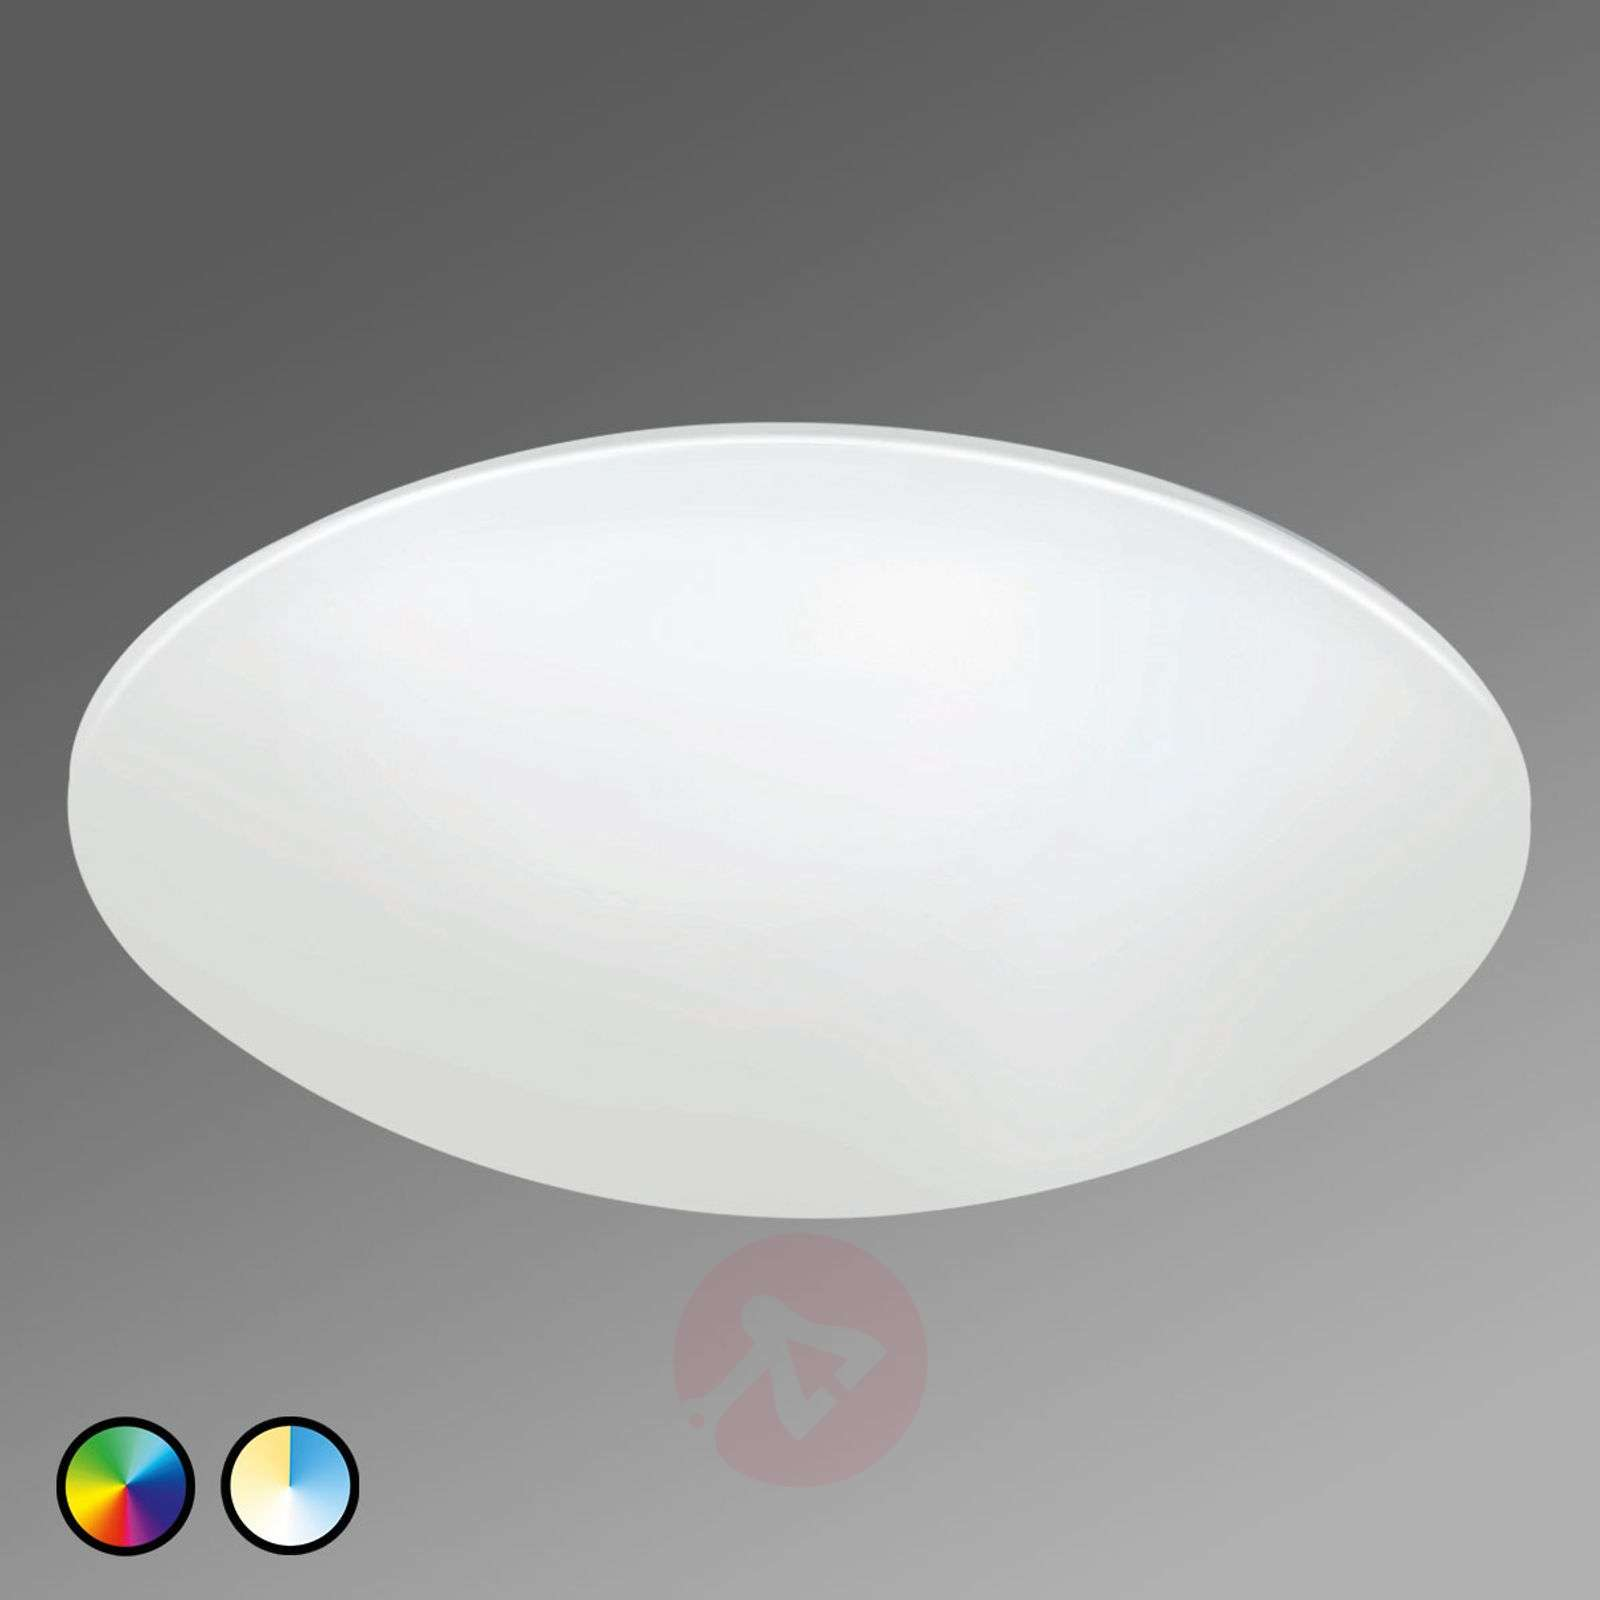 Giron-Connect – sterowana lampa sufitowa LED